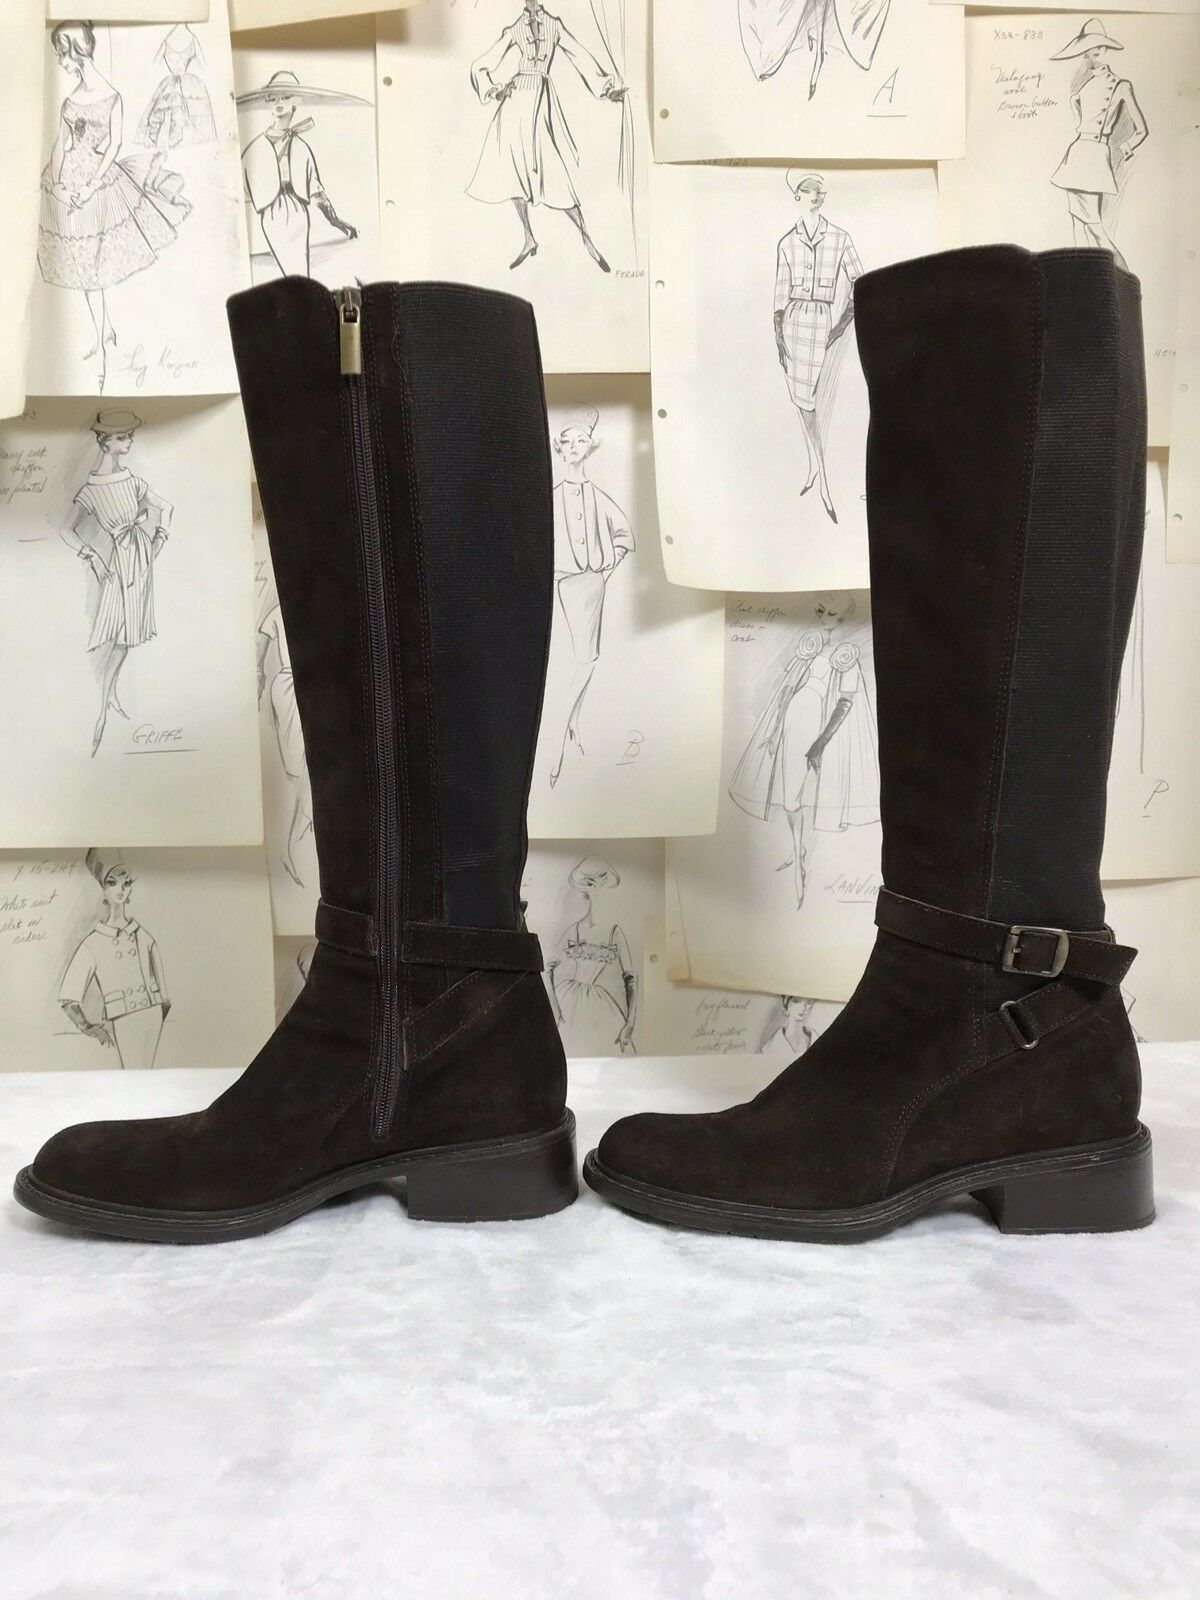 Aquatalia by Marvin K Uriale Tall Suede Braun Riding Riding Braun Stiefel EU 36 US 5 Waterproof f960d1